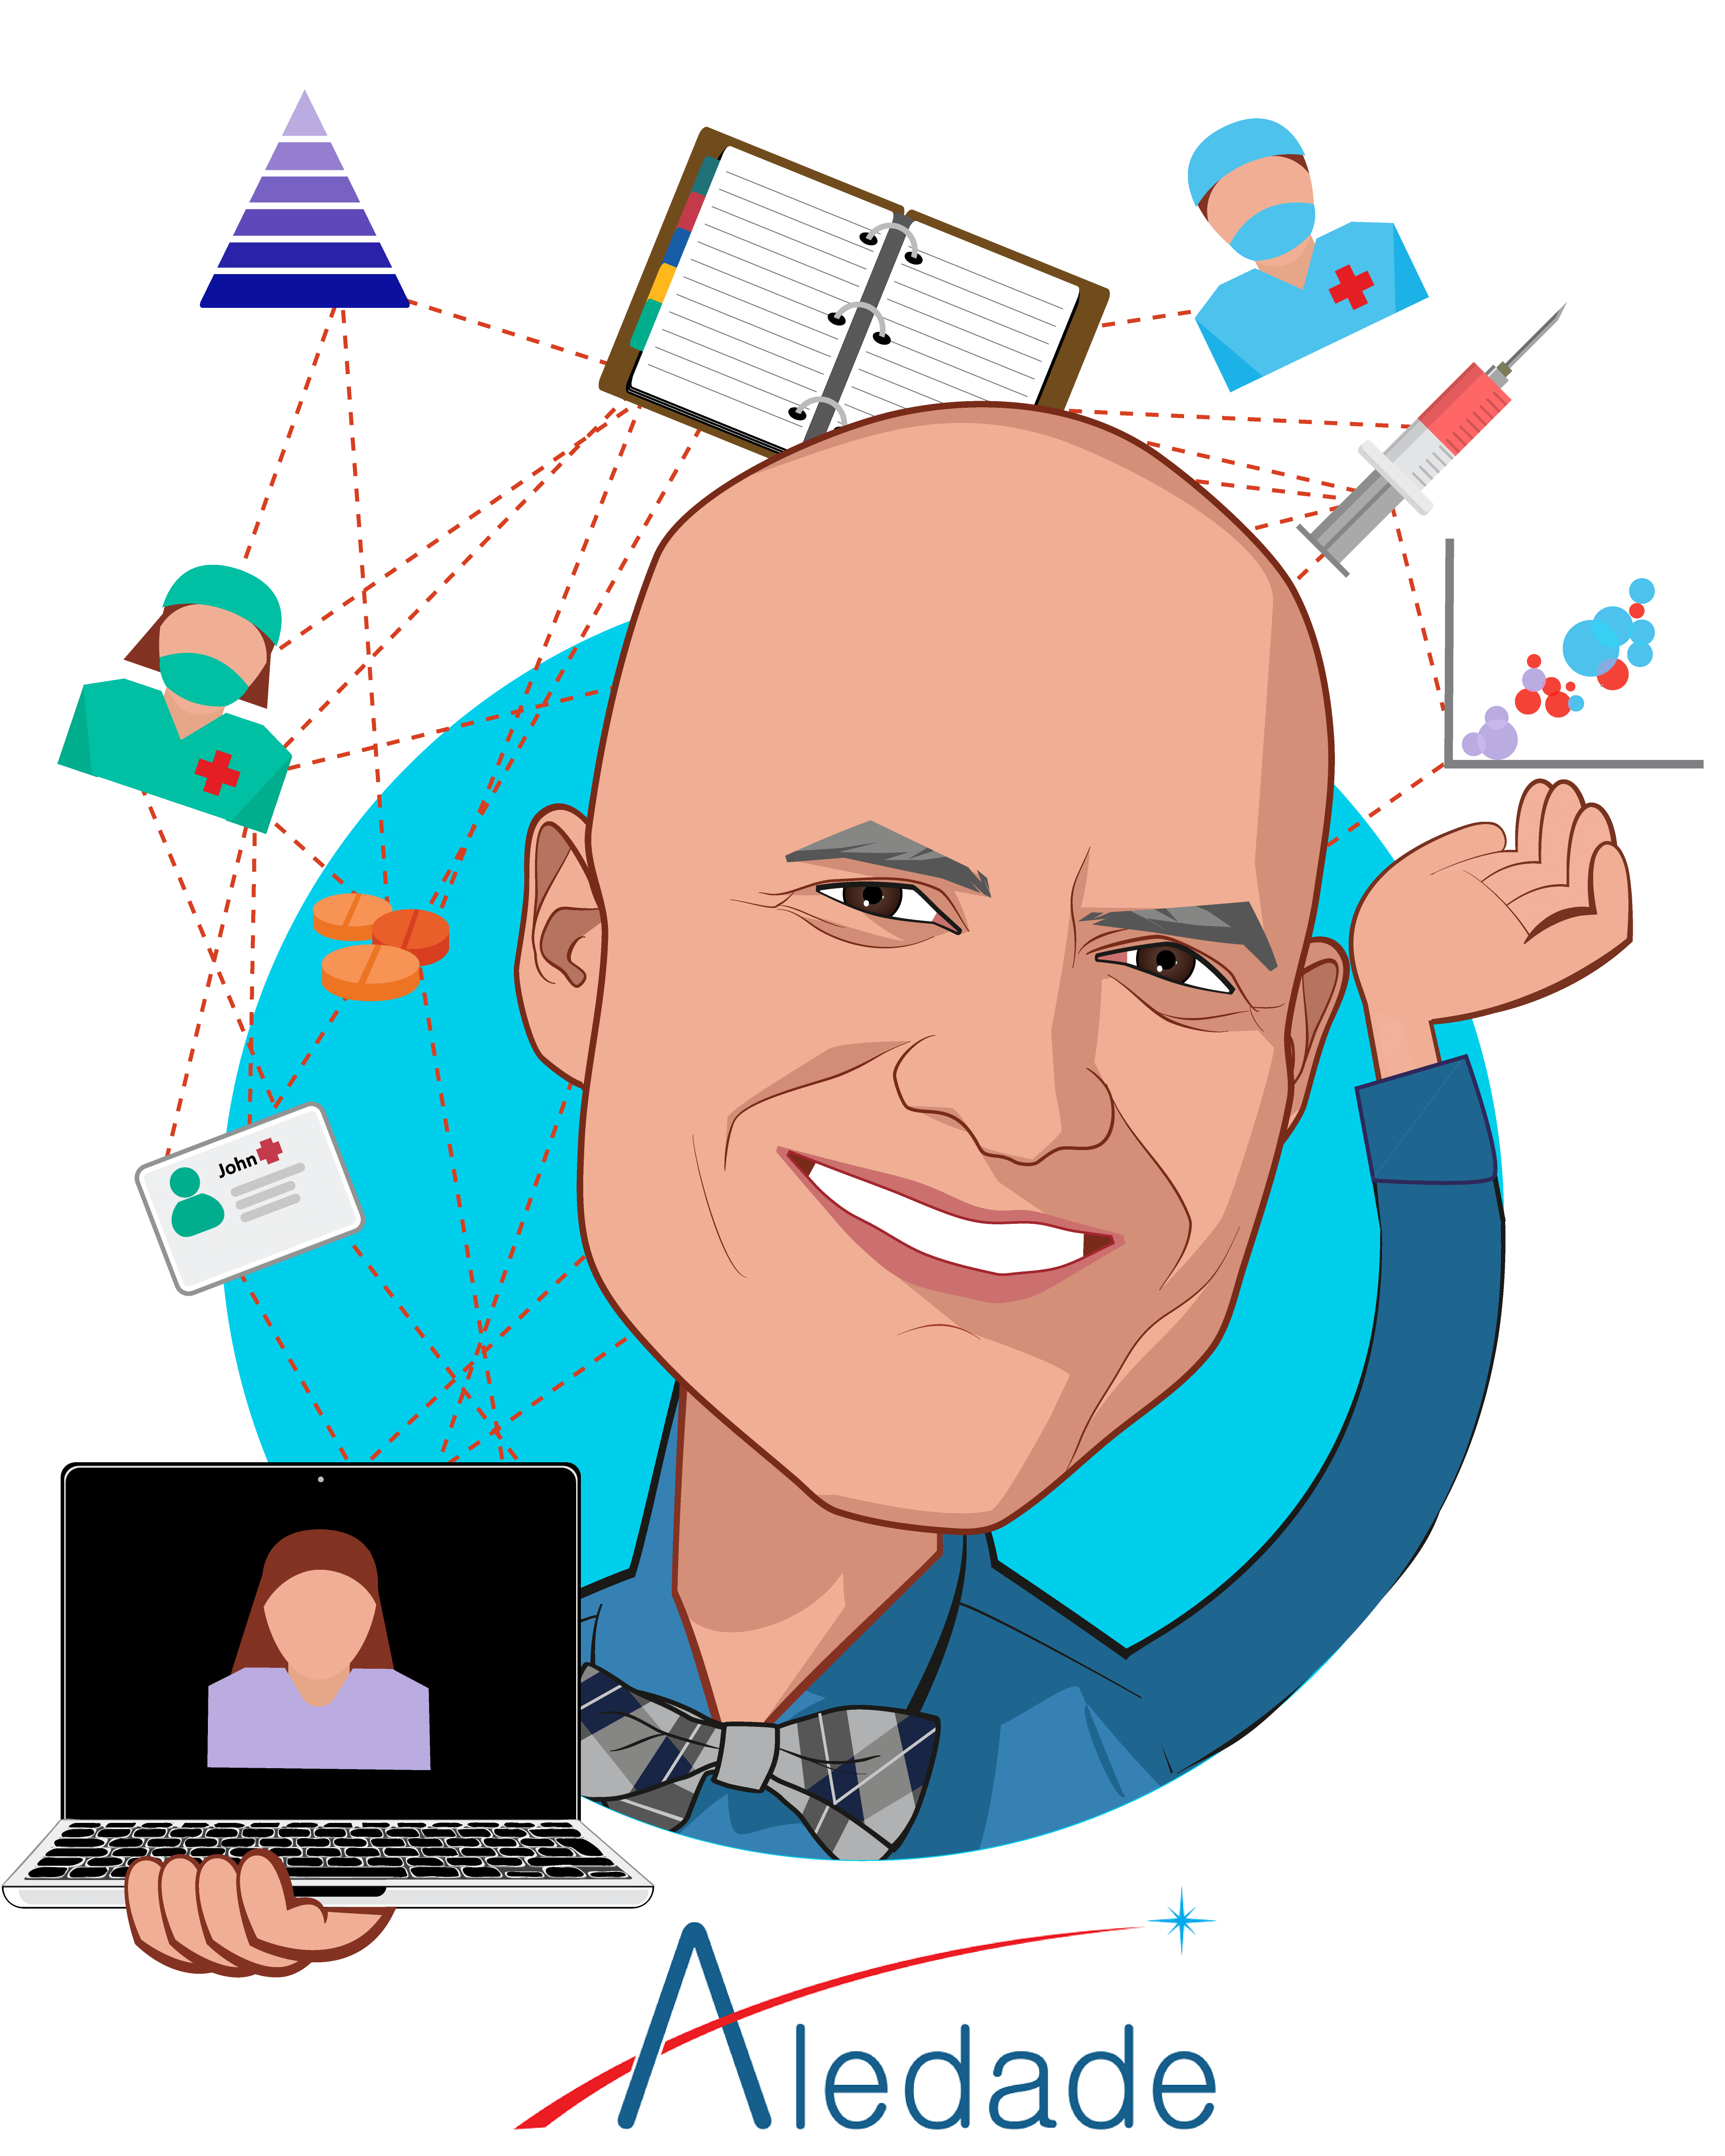 Overlay caricature of Farzad Mostashari, MD, who is speaking at HLTH and is Founder and CEO at Aledade, Inc.